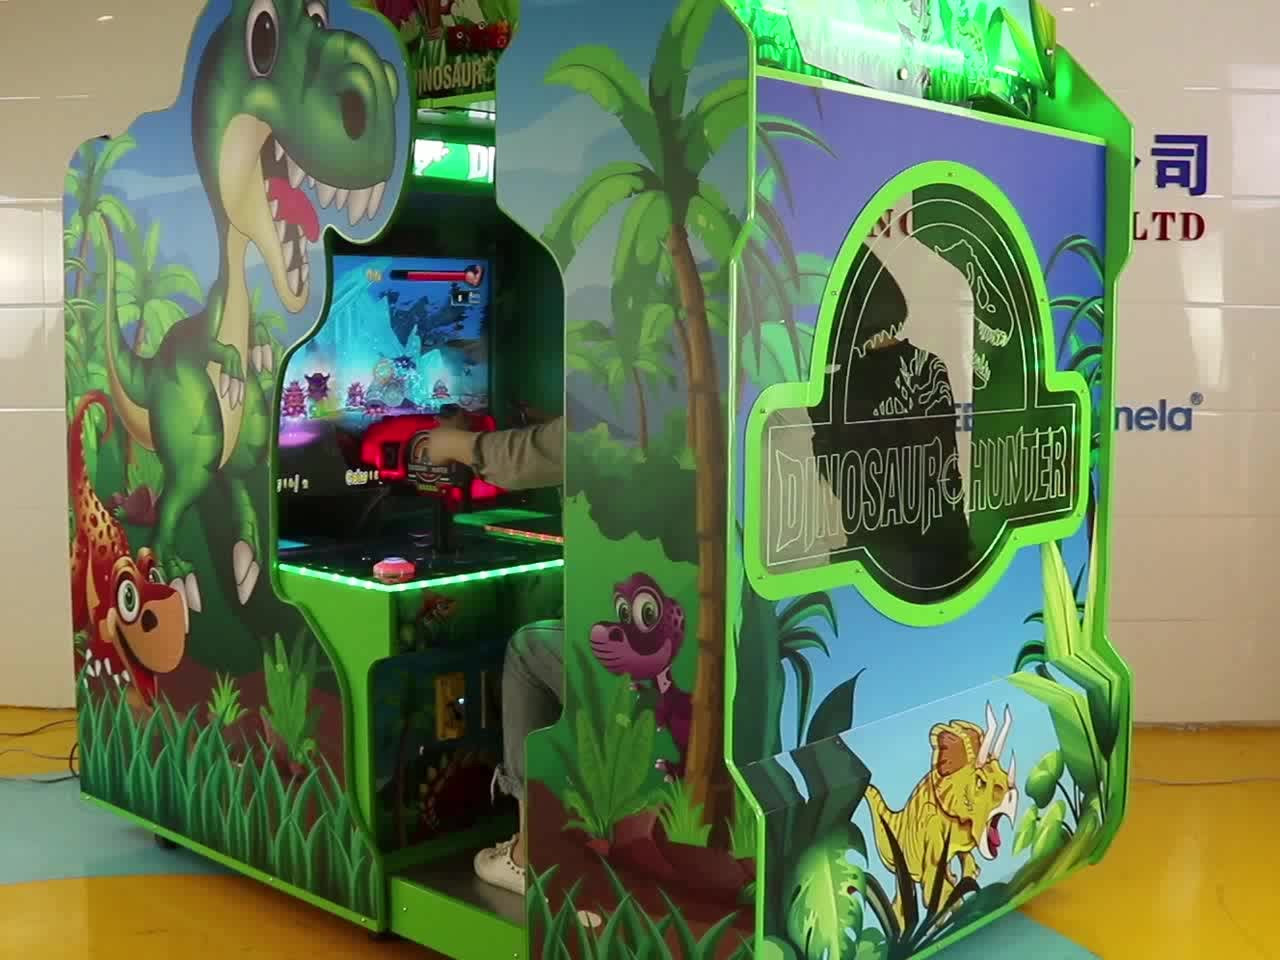 Dinosaurus Hunter Video Shooting Game Machine Simulator Spel in Muntautomaat